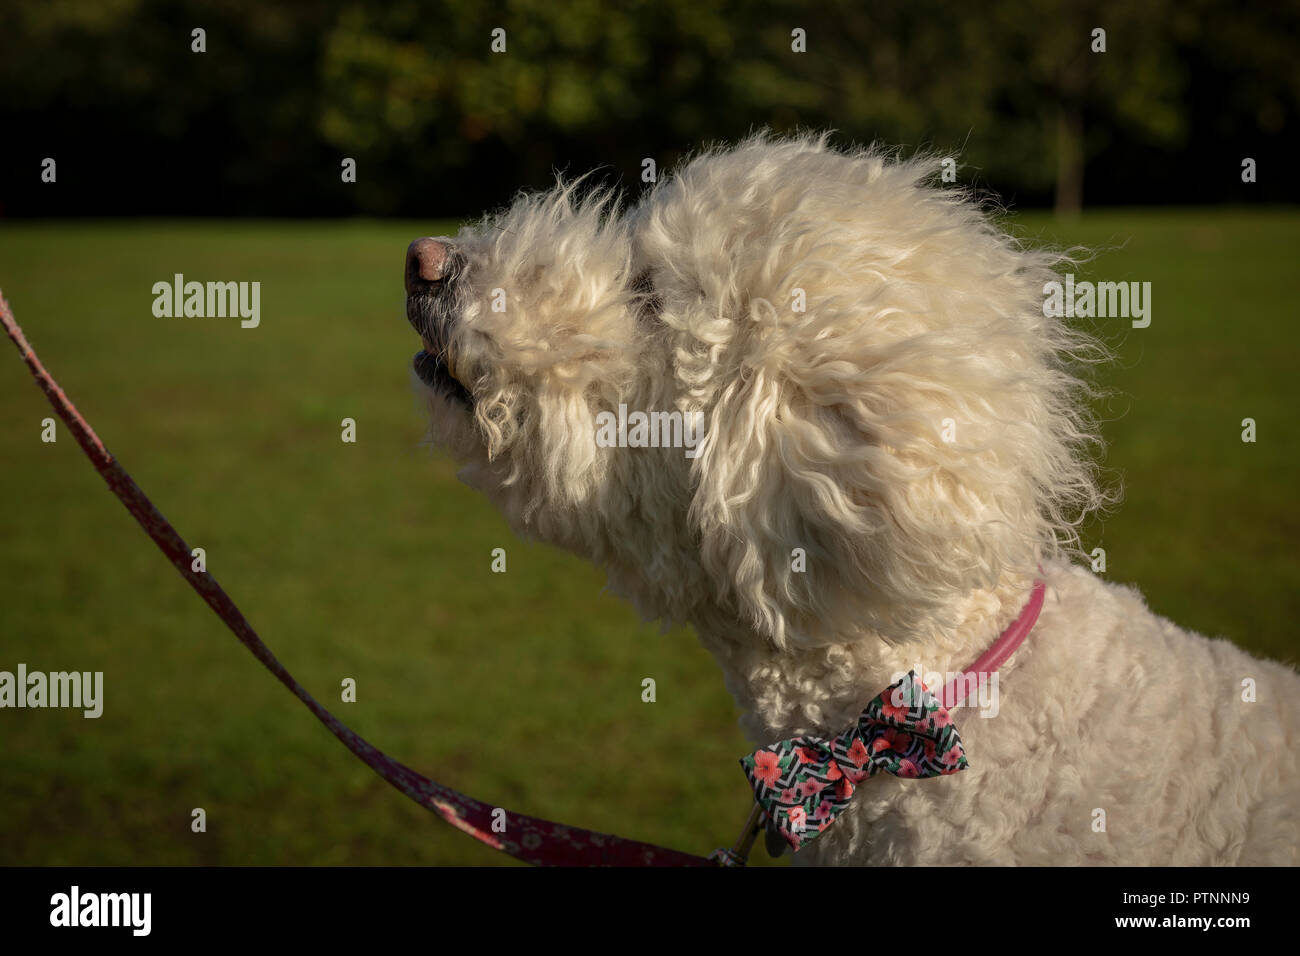 Portrait of white labradoodle dog, pictured outdoors - Stock Image